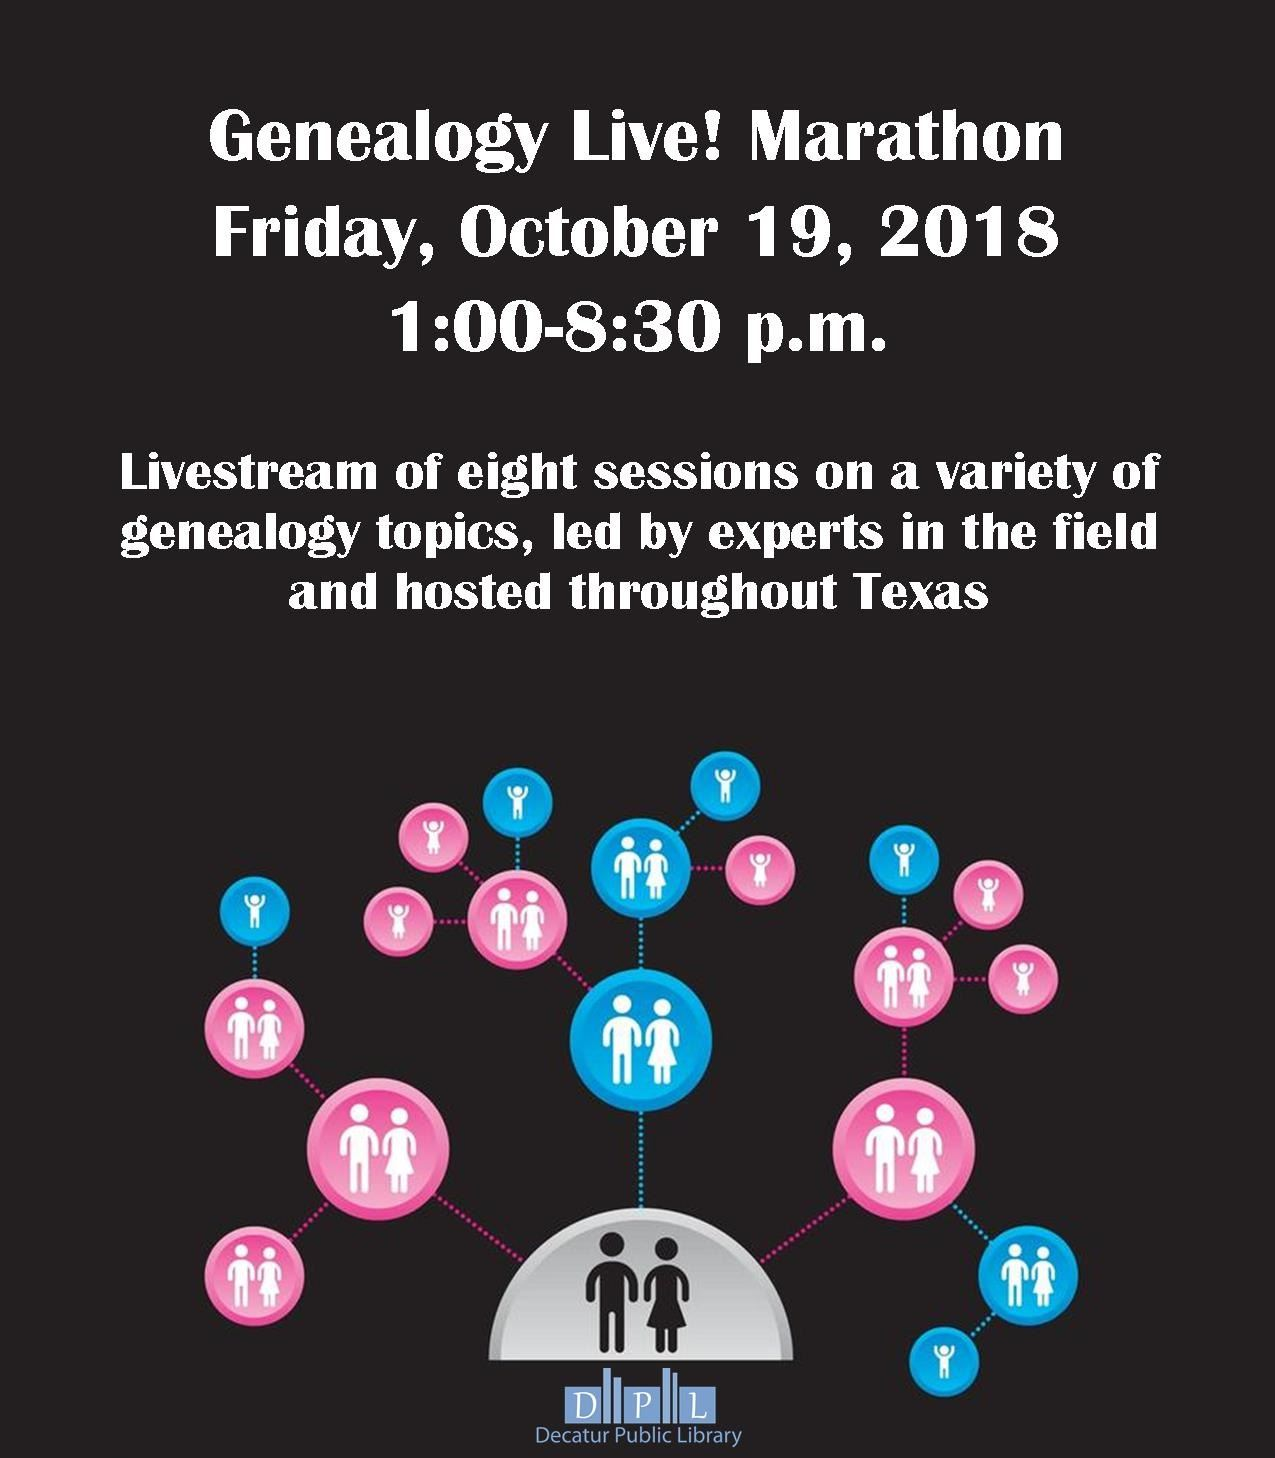 genealogy marathon flyer